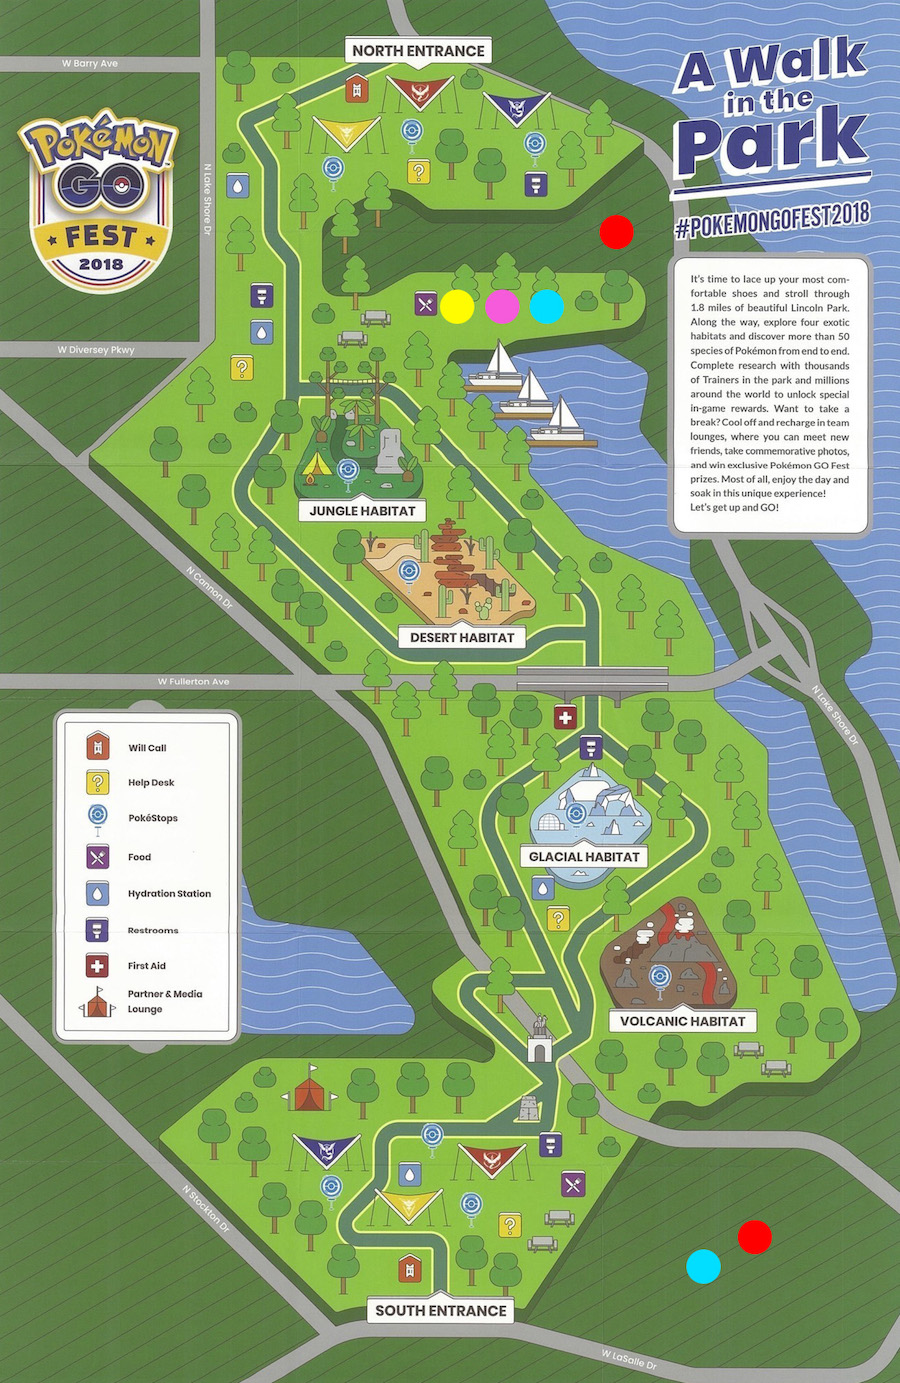 A map of the festival area with COLT locations.